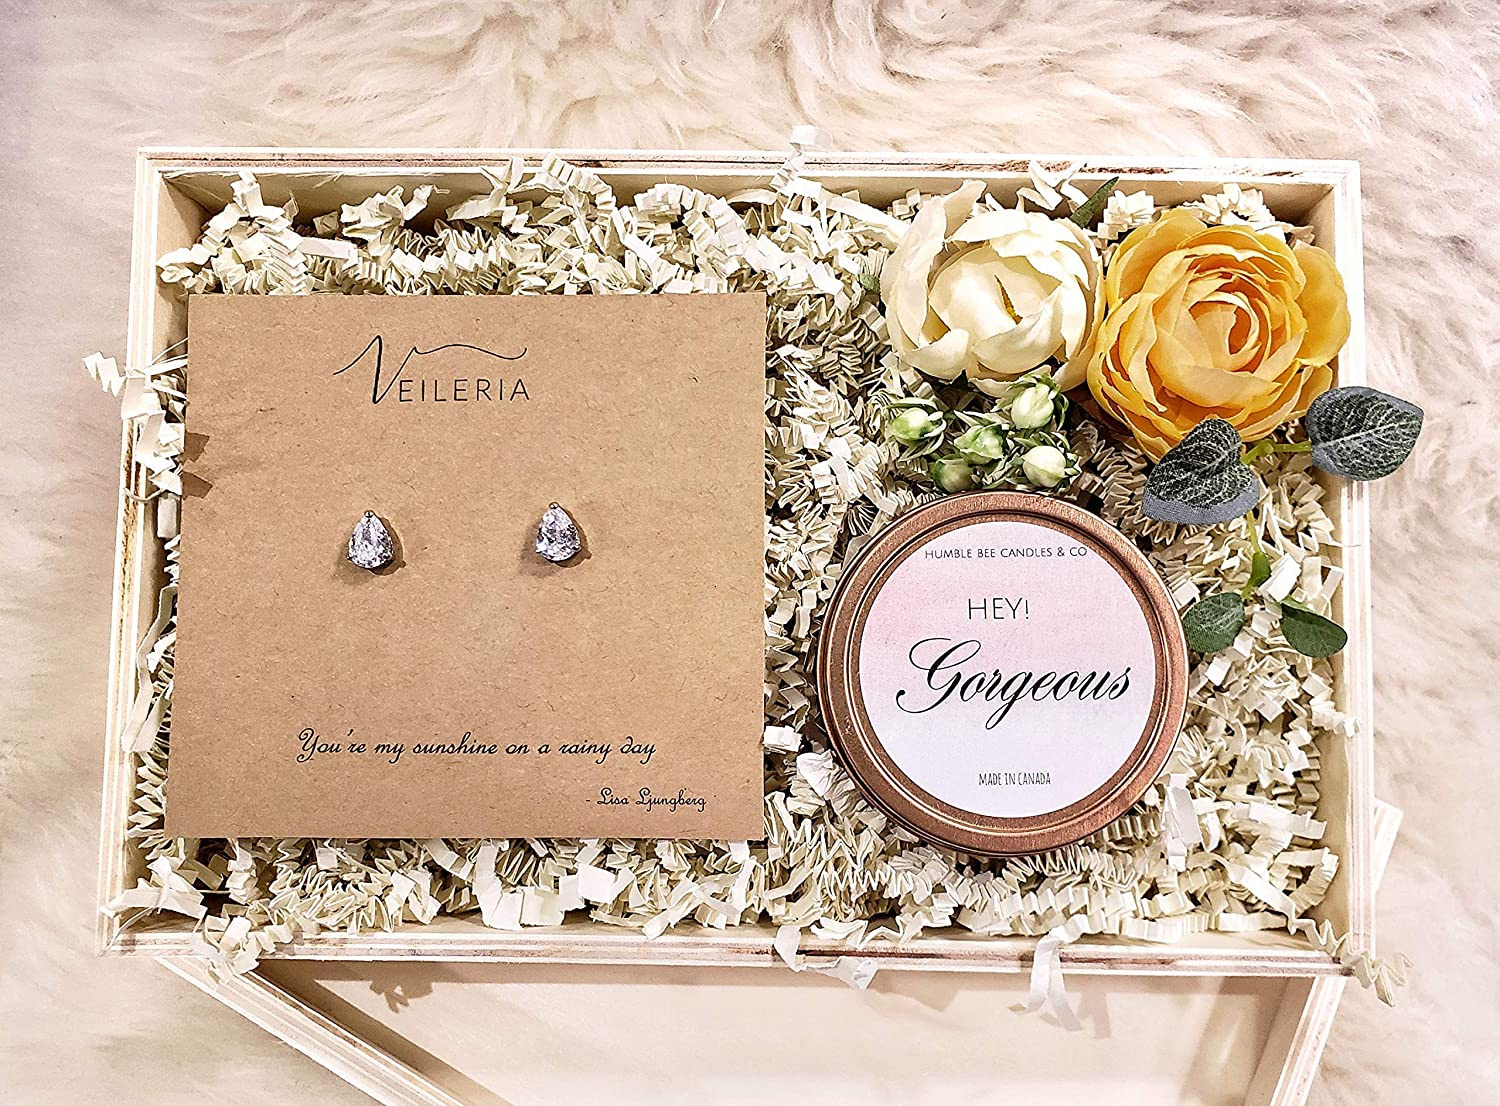 Humble Bee Veileria Floral Gift Box Set Soy Wax Scented Candle Pear Shape Cubic Zirconia Earrings Luxury Gifts For Her Mother S Day Wife Girlfriend